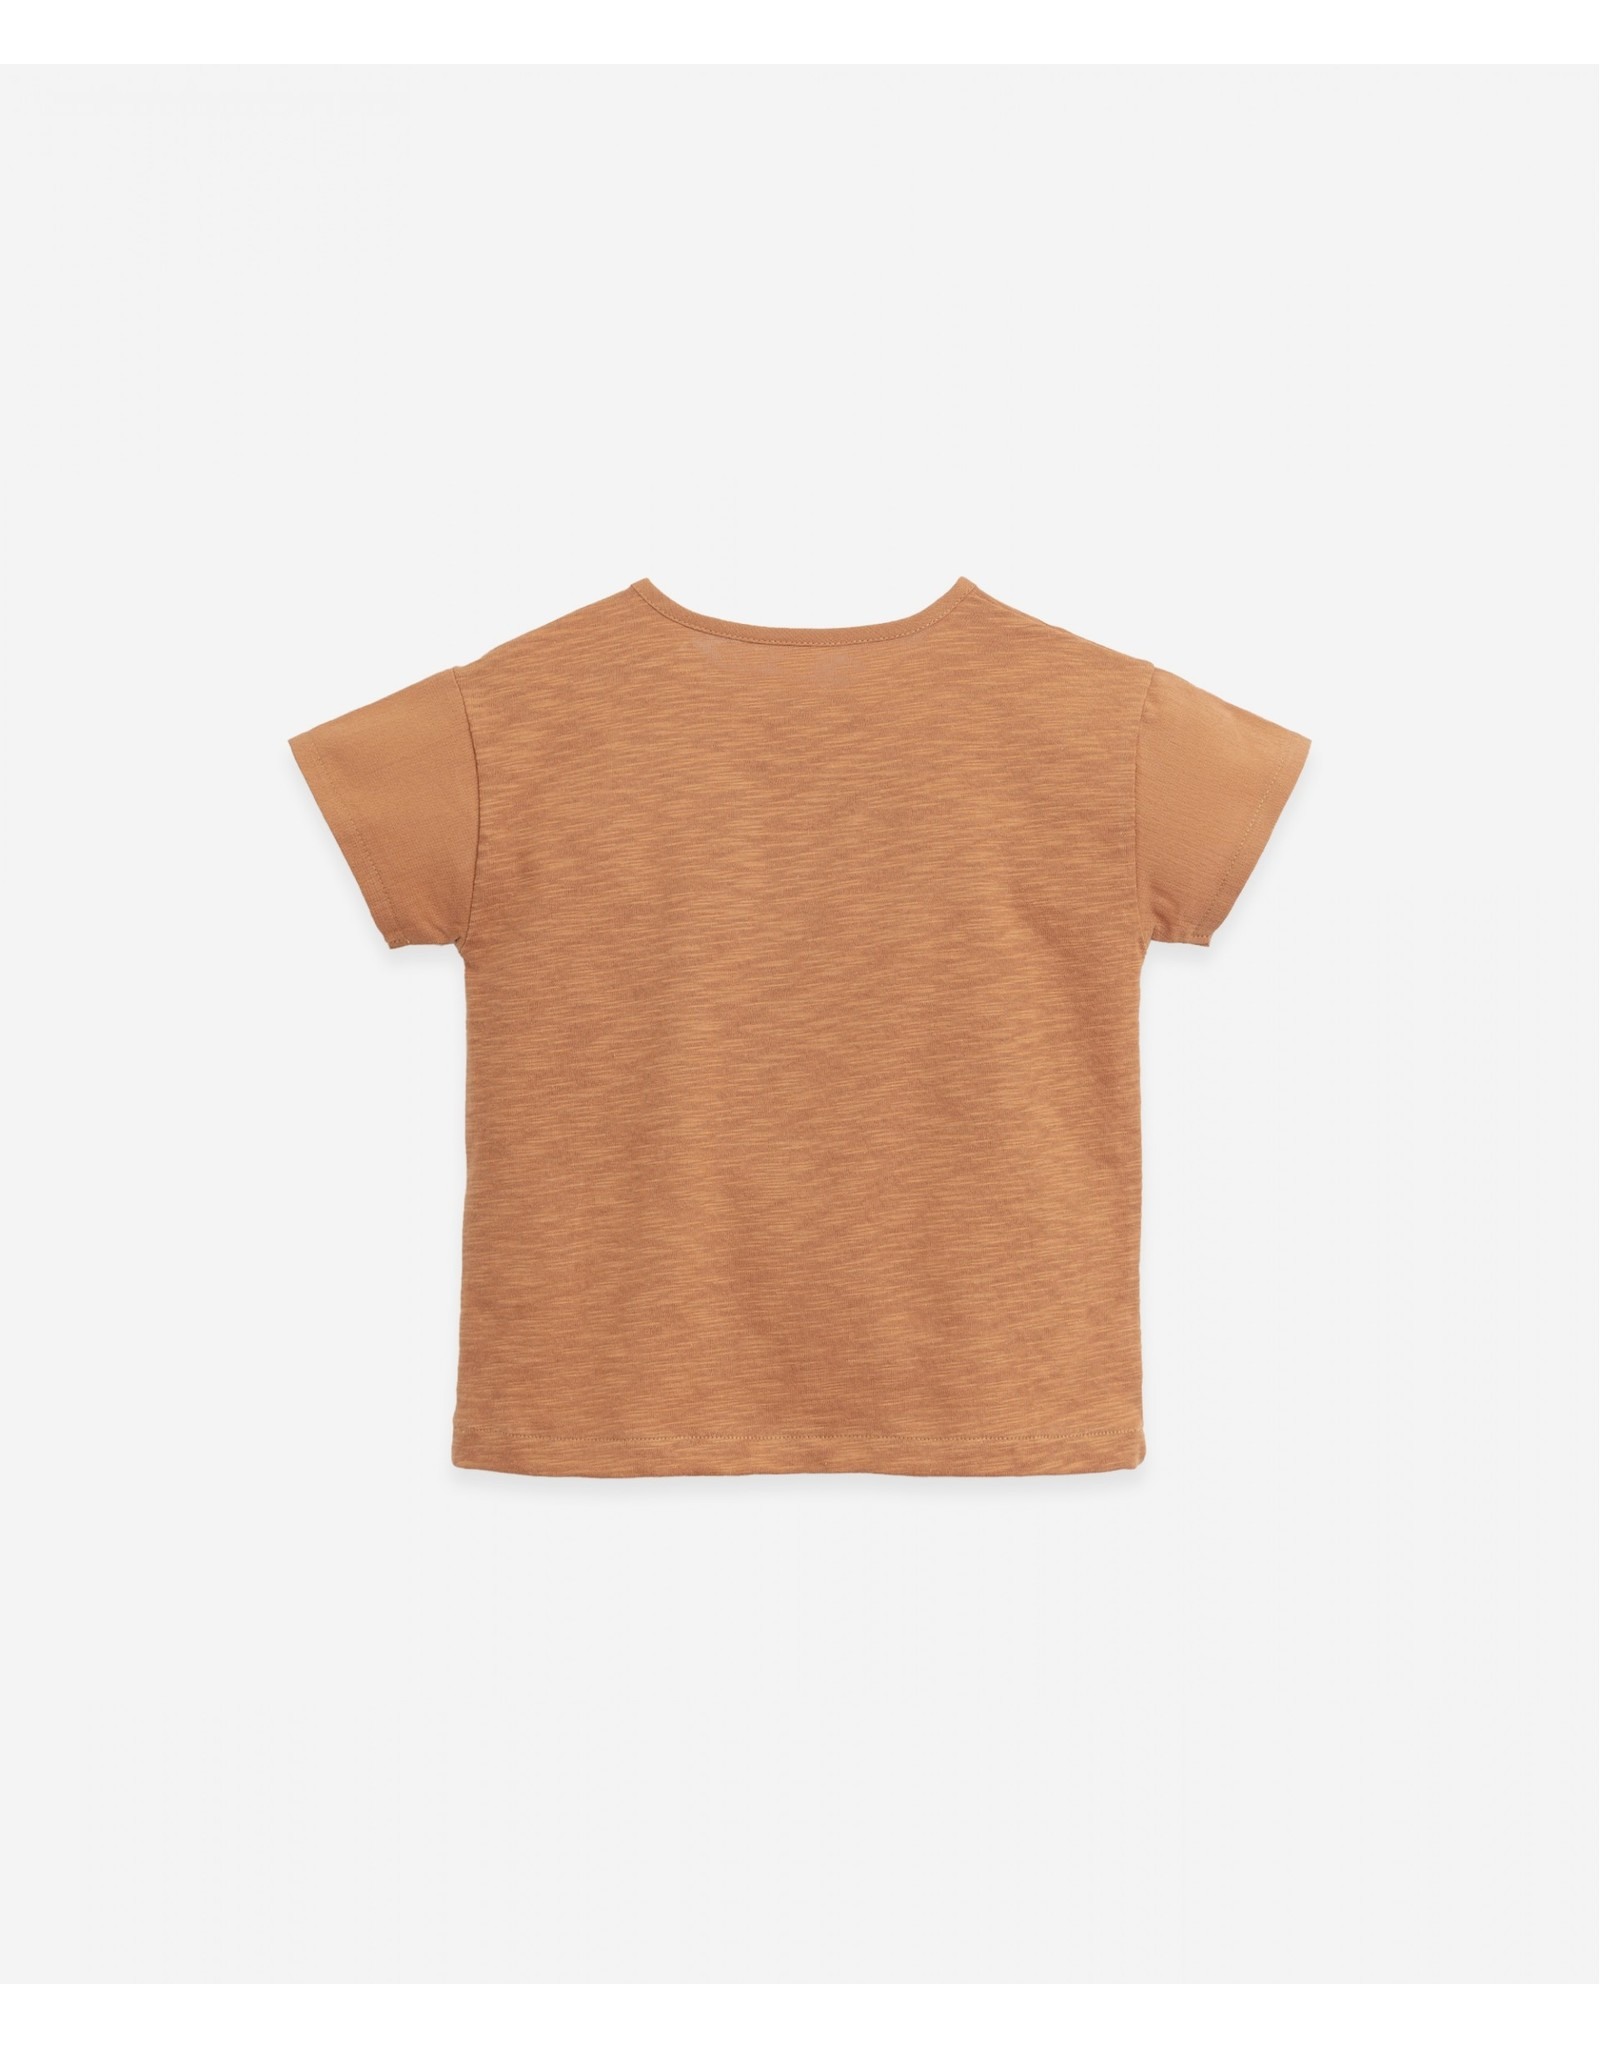 Play Up Play Up T-shirt with Buttons Botany Raquel